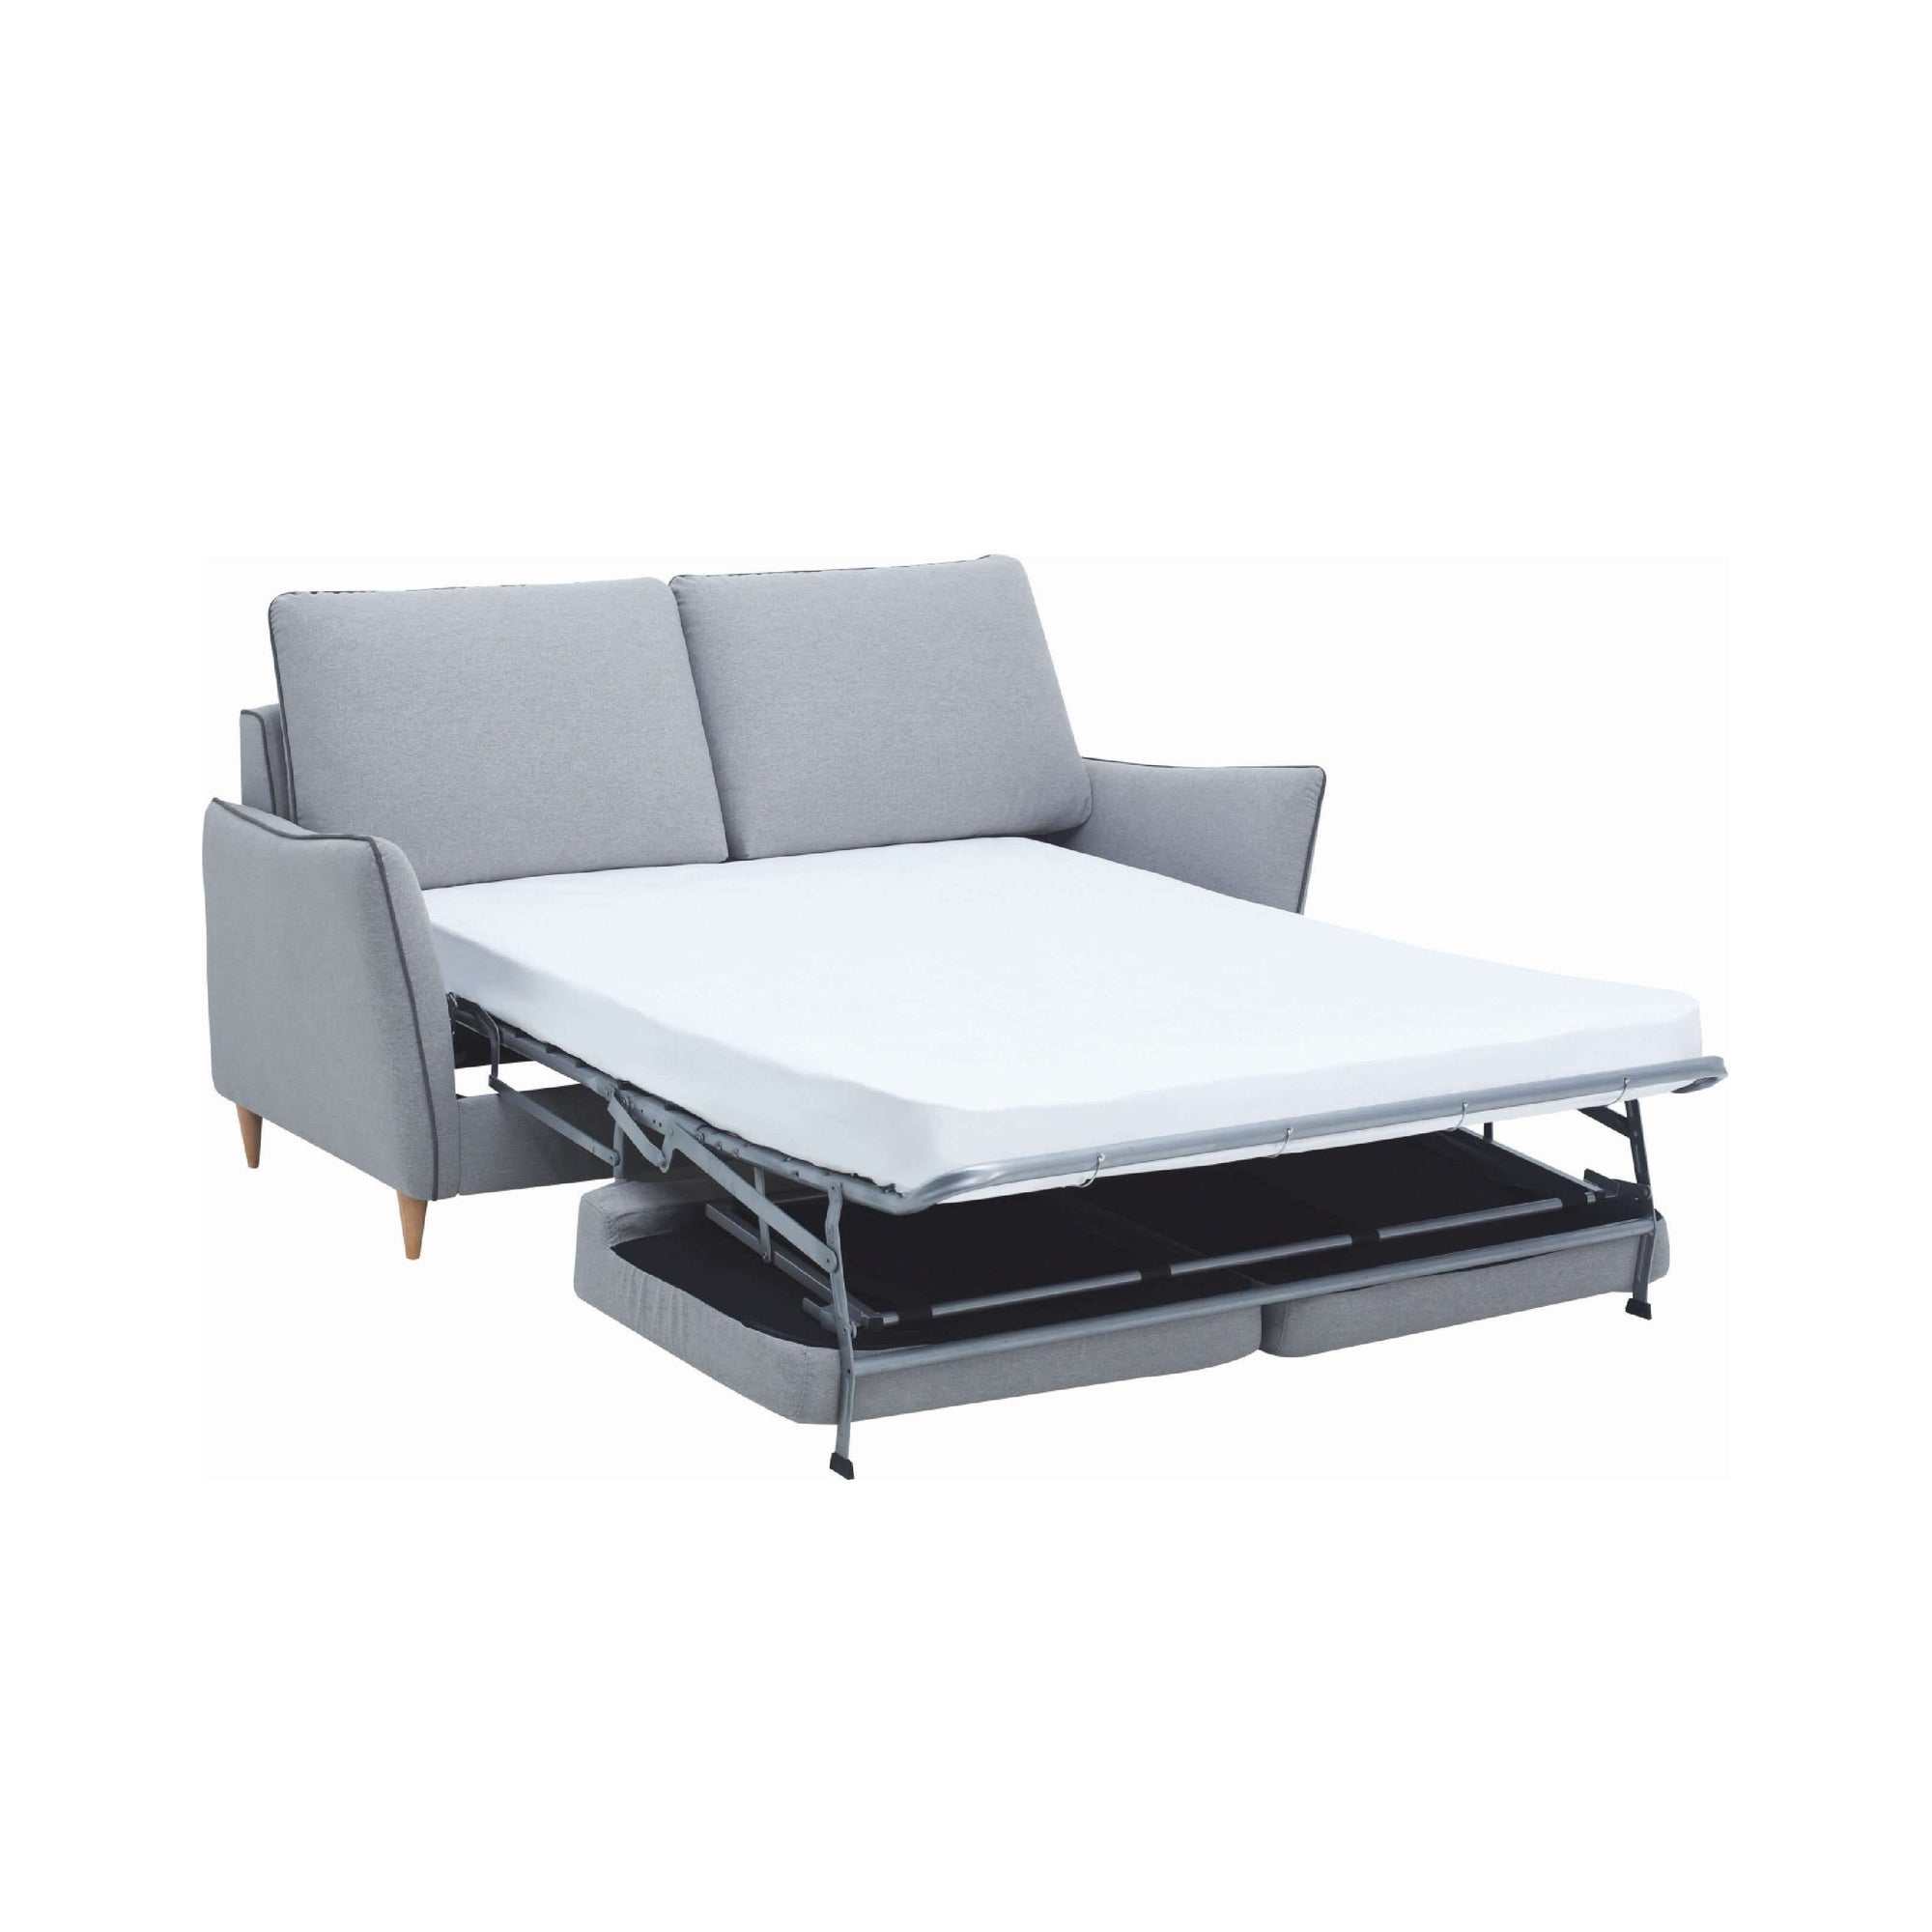 Agera Sofa Bed with Pale Silver Colour Dimity Fabric